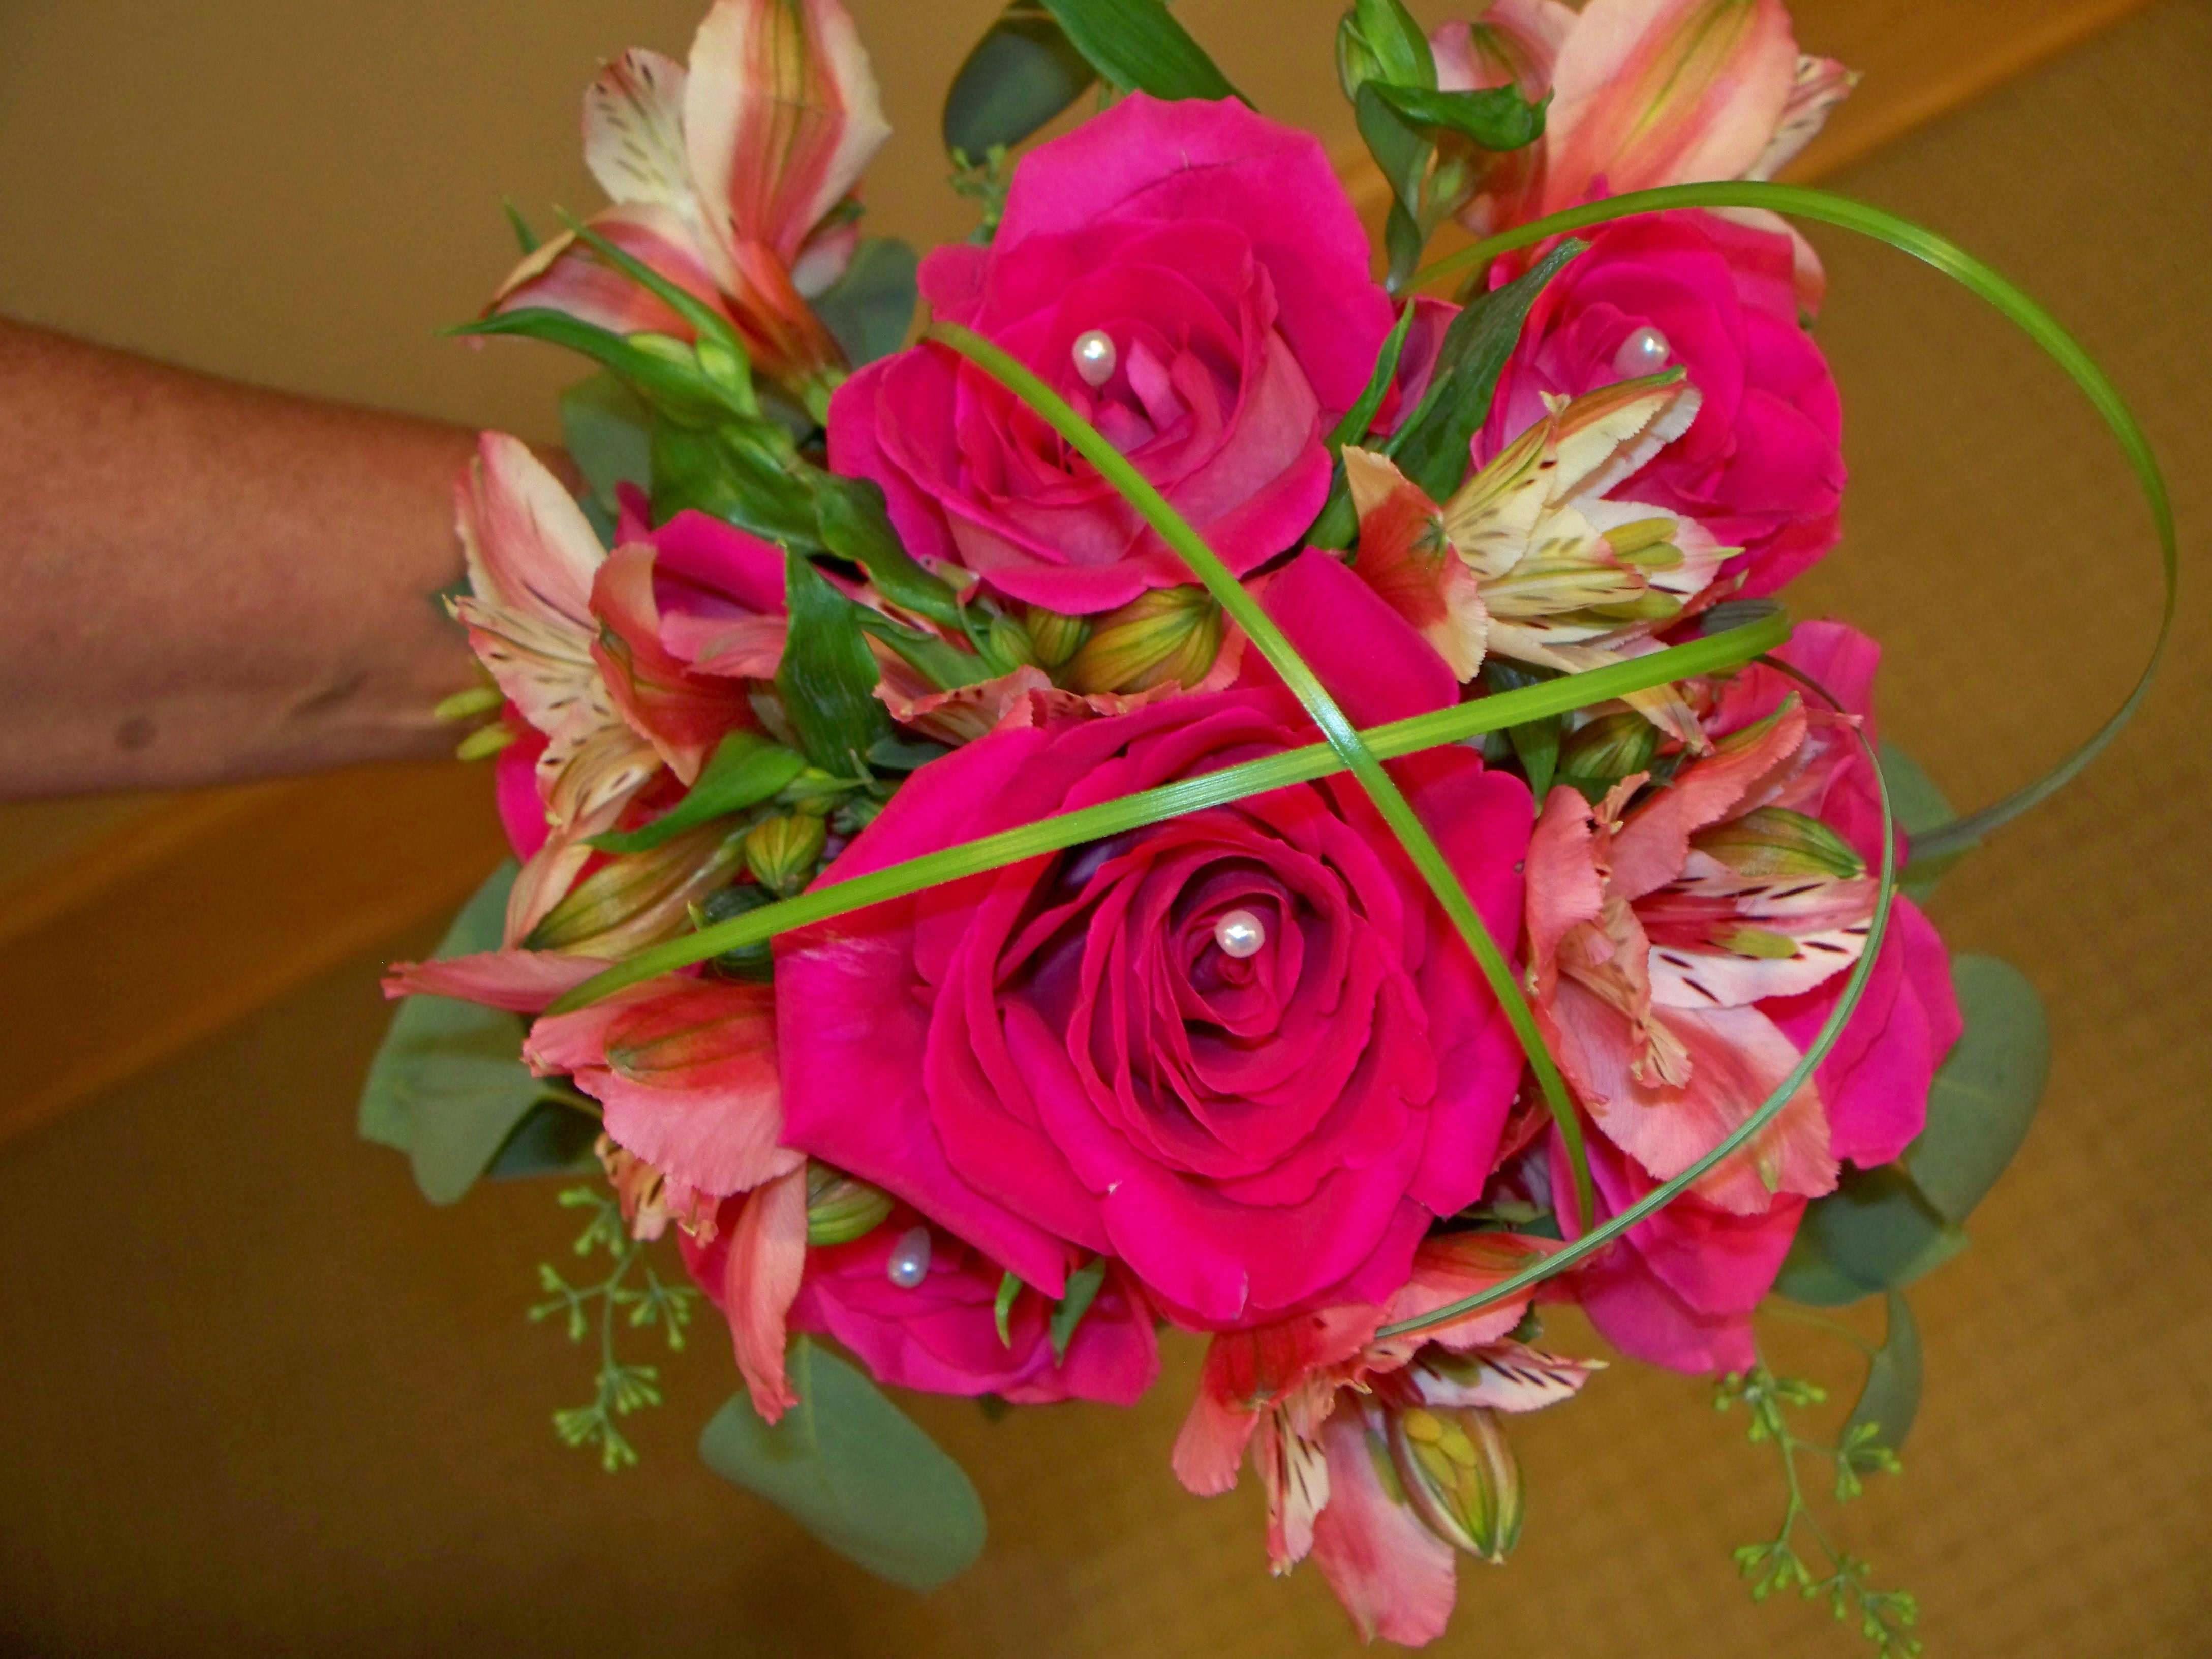 BRIDESMAID BOUQUET PINK ROSES & ALSTROMERIA